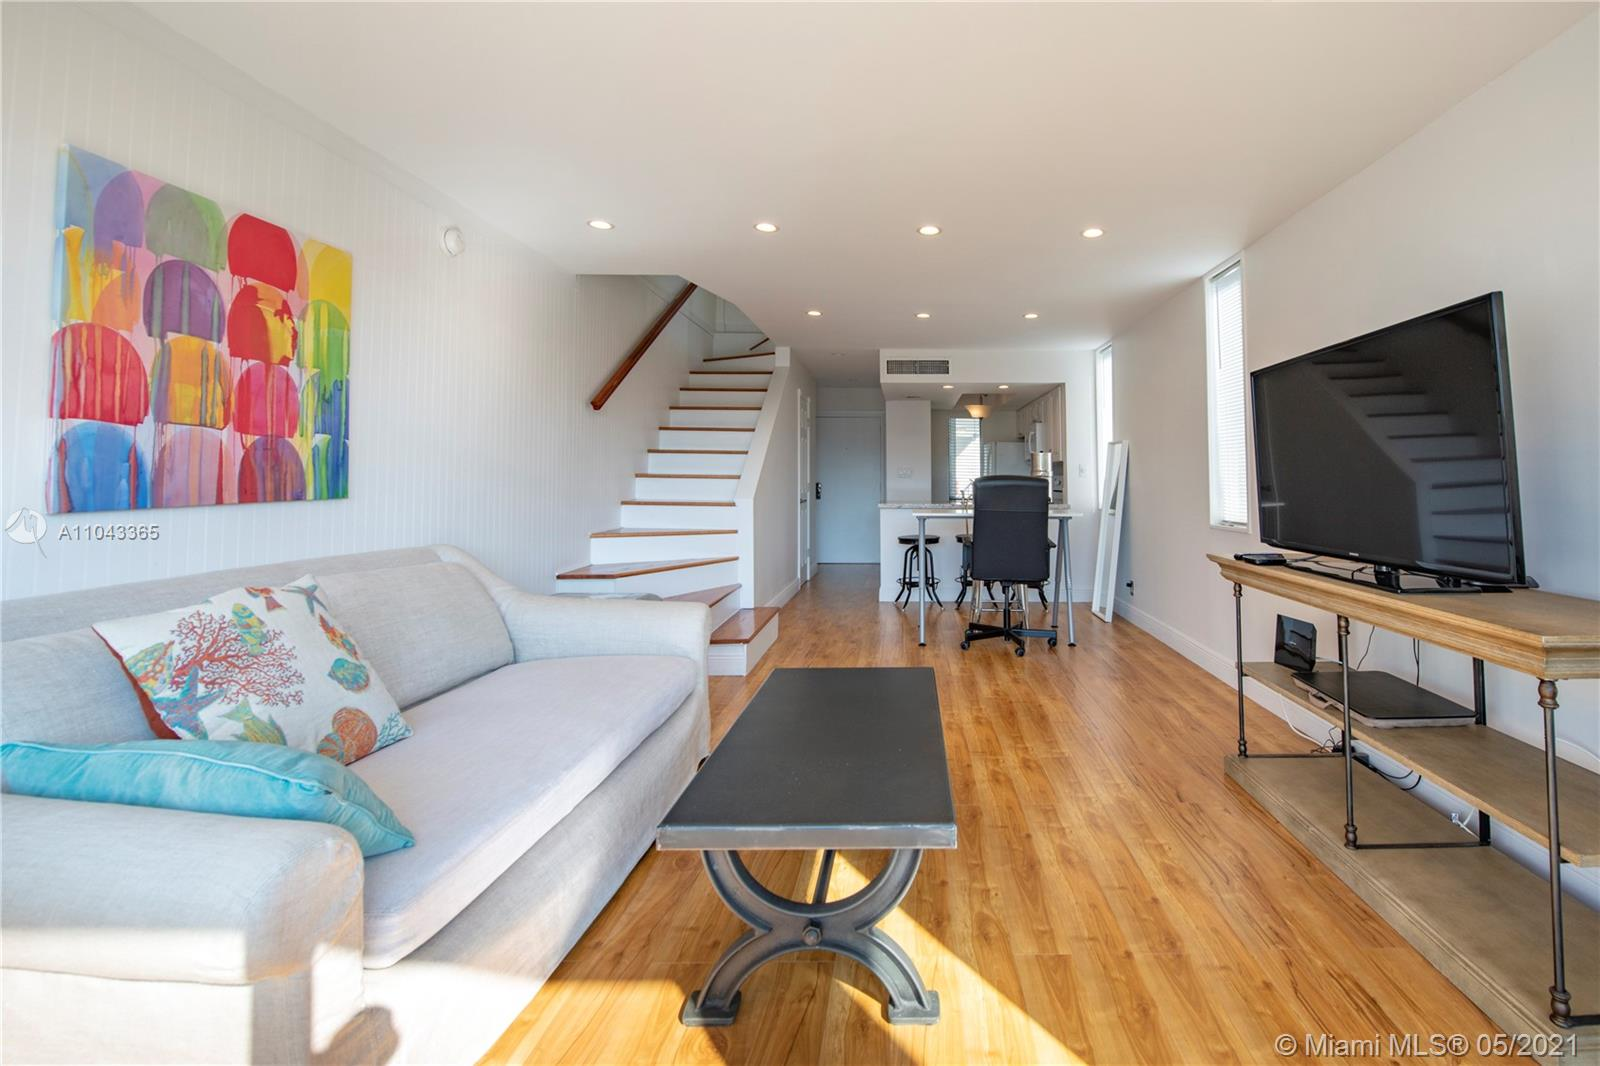 Amazing 2 story corner unit condo. Open floor plan, renovated kitchen and baths, recessed lightning, W/D in the unit. Close to beaches, restaurants, shops and airport.UNIT HAS A TENANT WITH LEASE UNTIL 01/31/2022.NO BOAT SLIP & NO WATER VIEW.